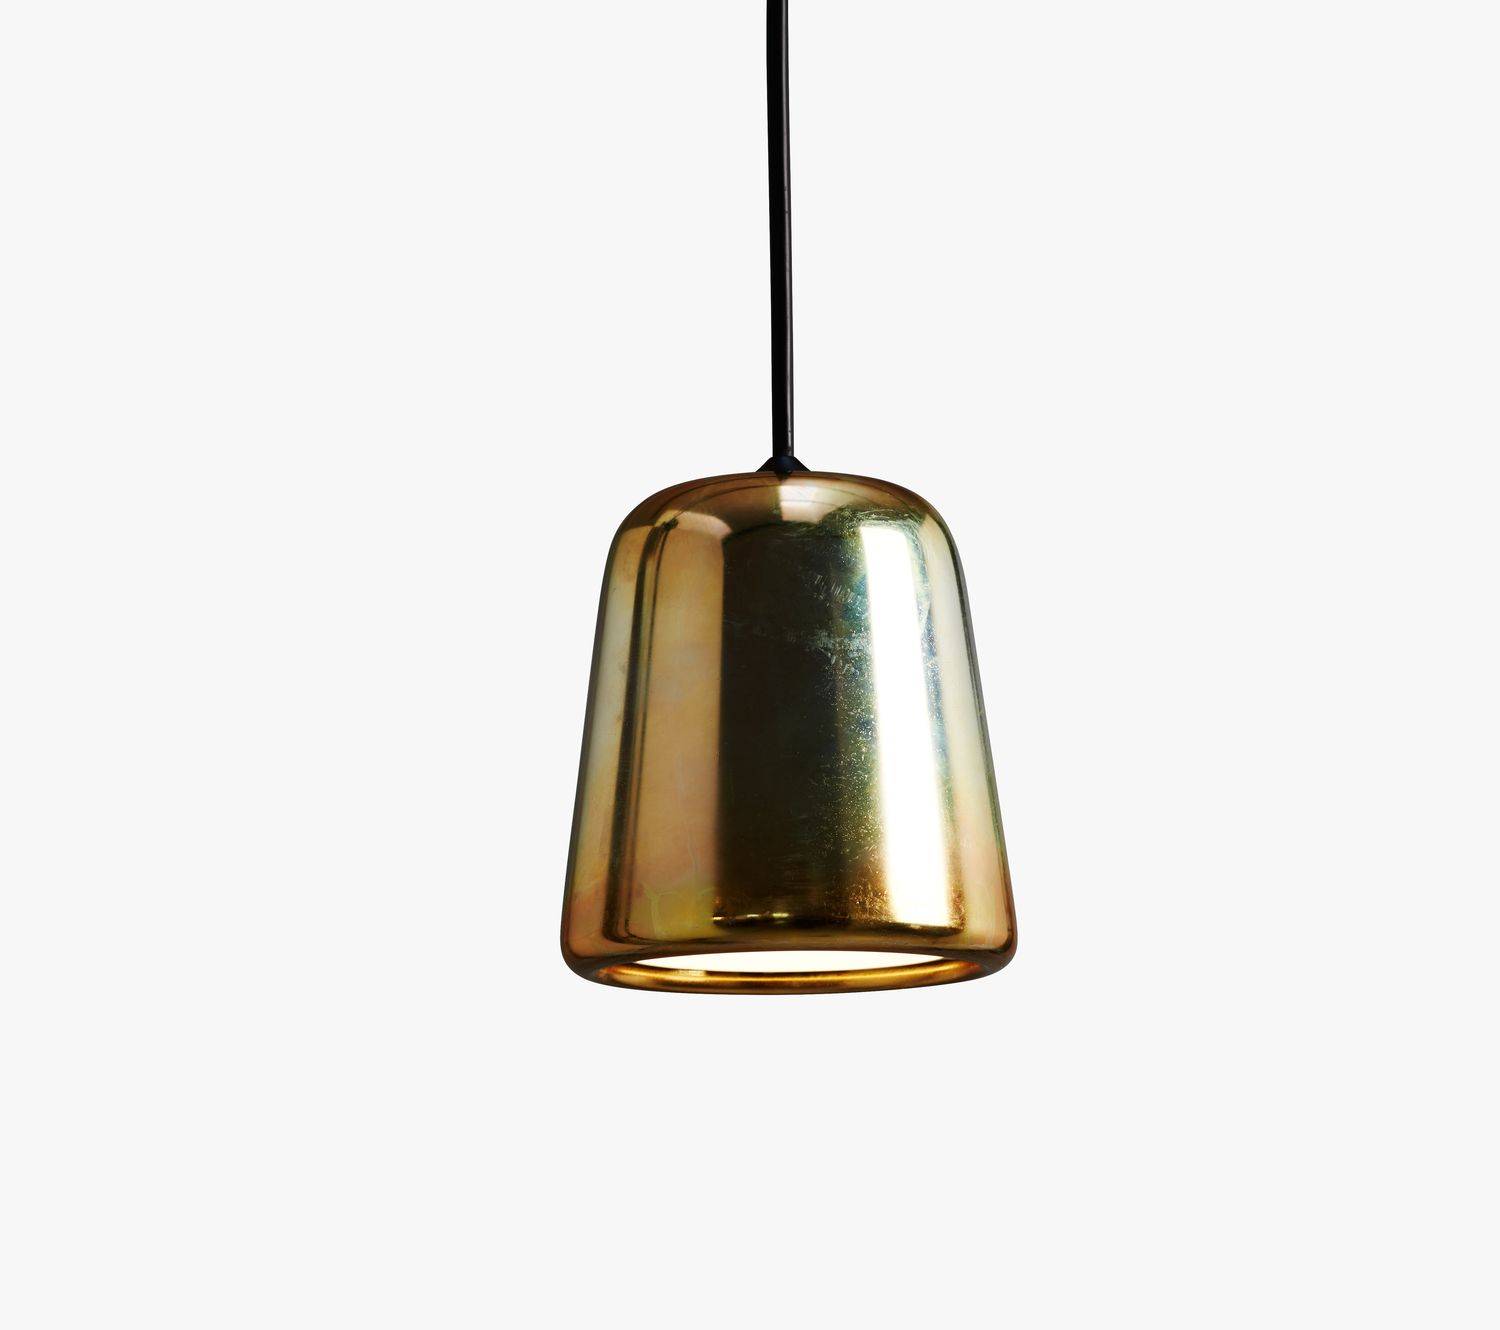 BRASS LIGHT by NEW WORKS favorited by YOU BRING LIGHT IN